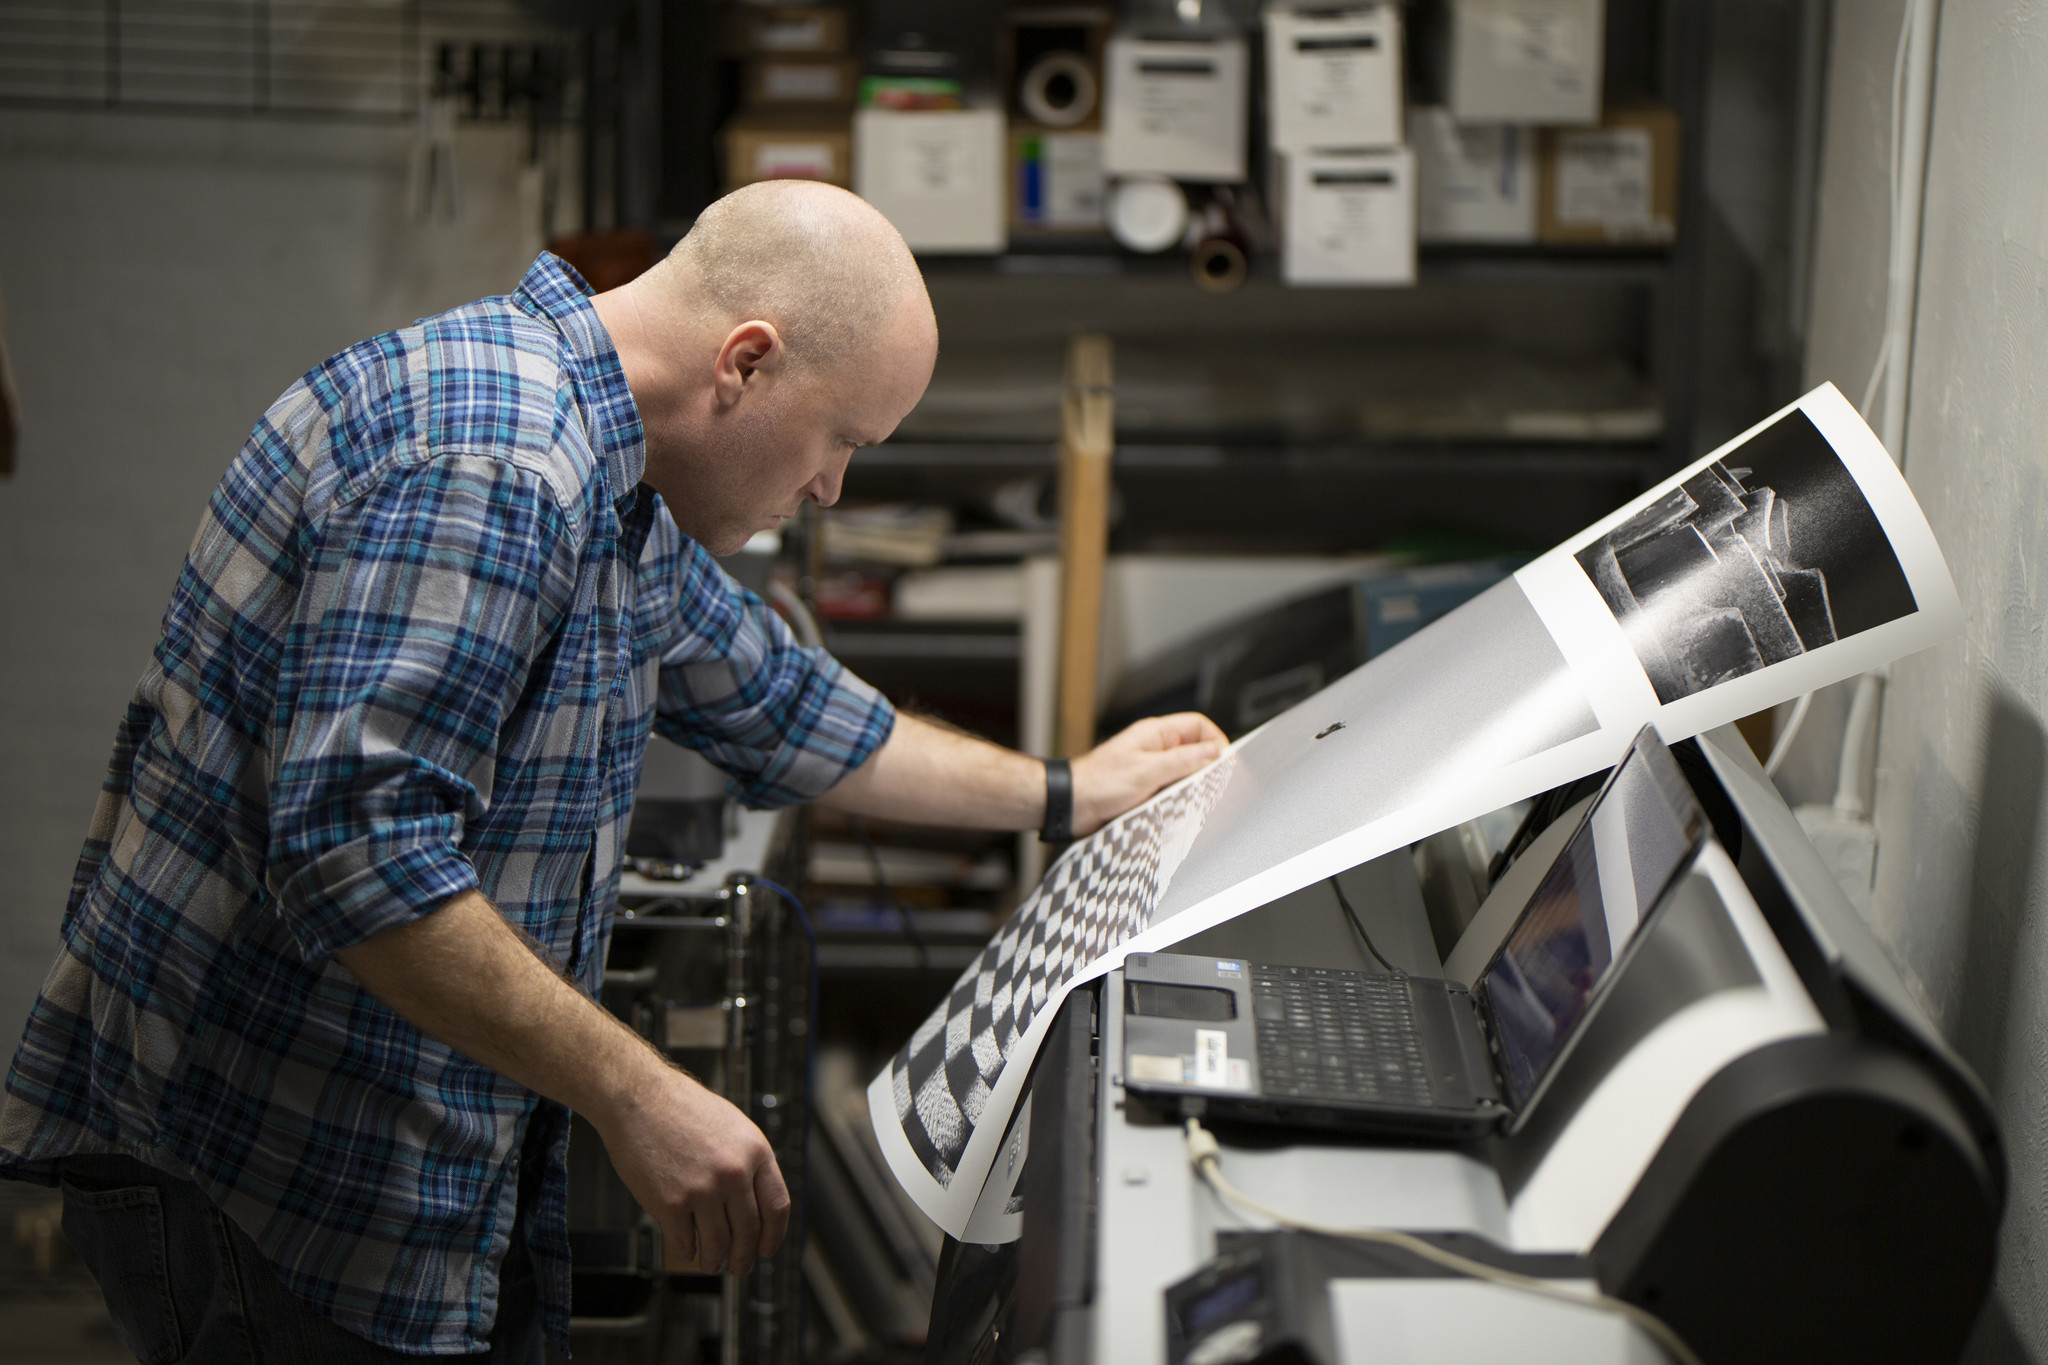 Jason Robinson, our print technician, reviews a print for color-correctness and quality.